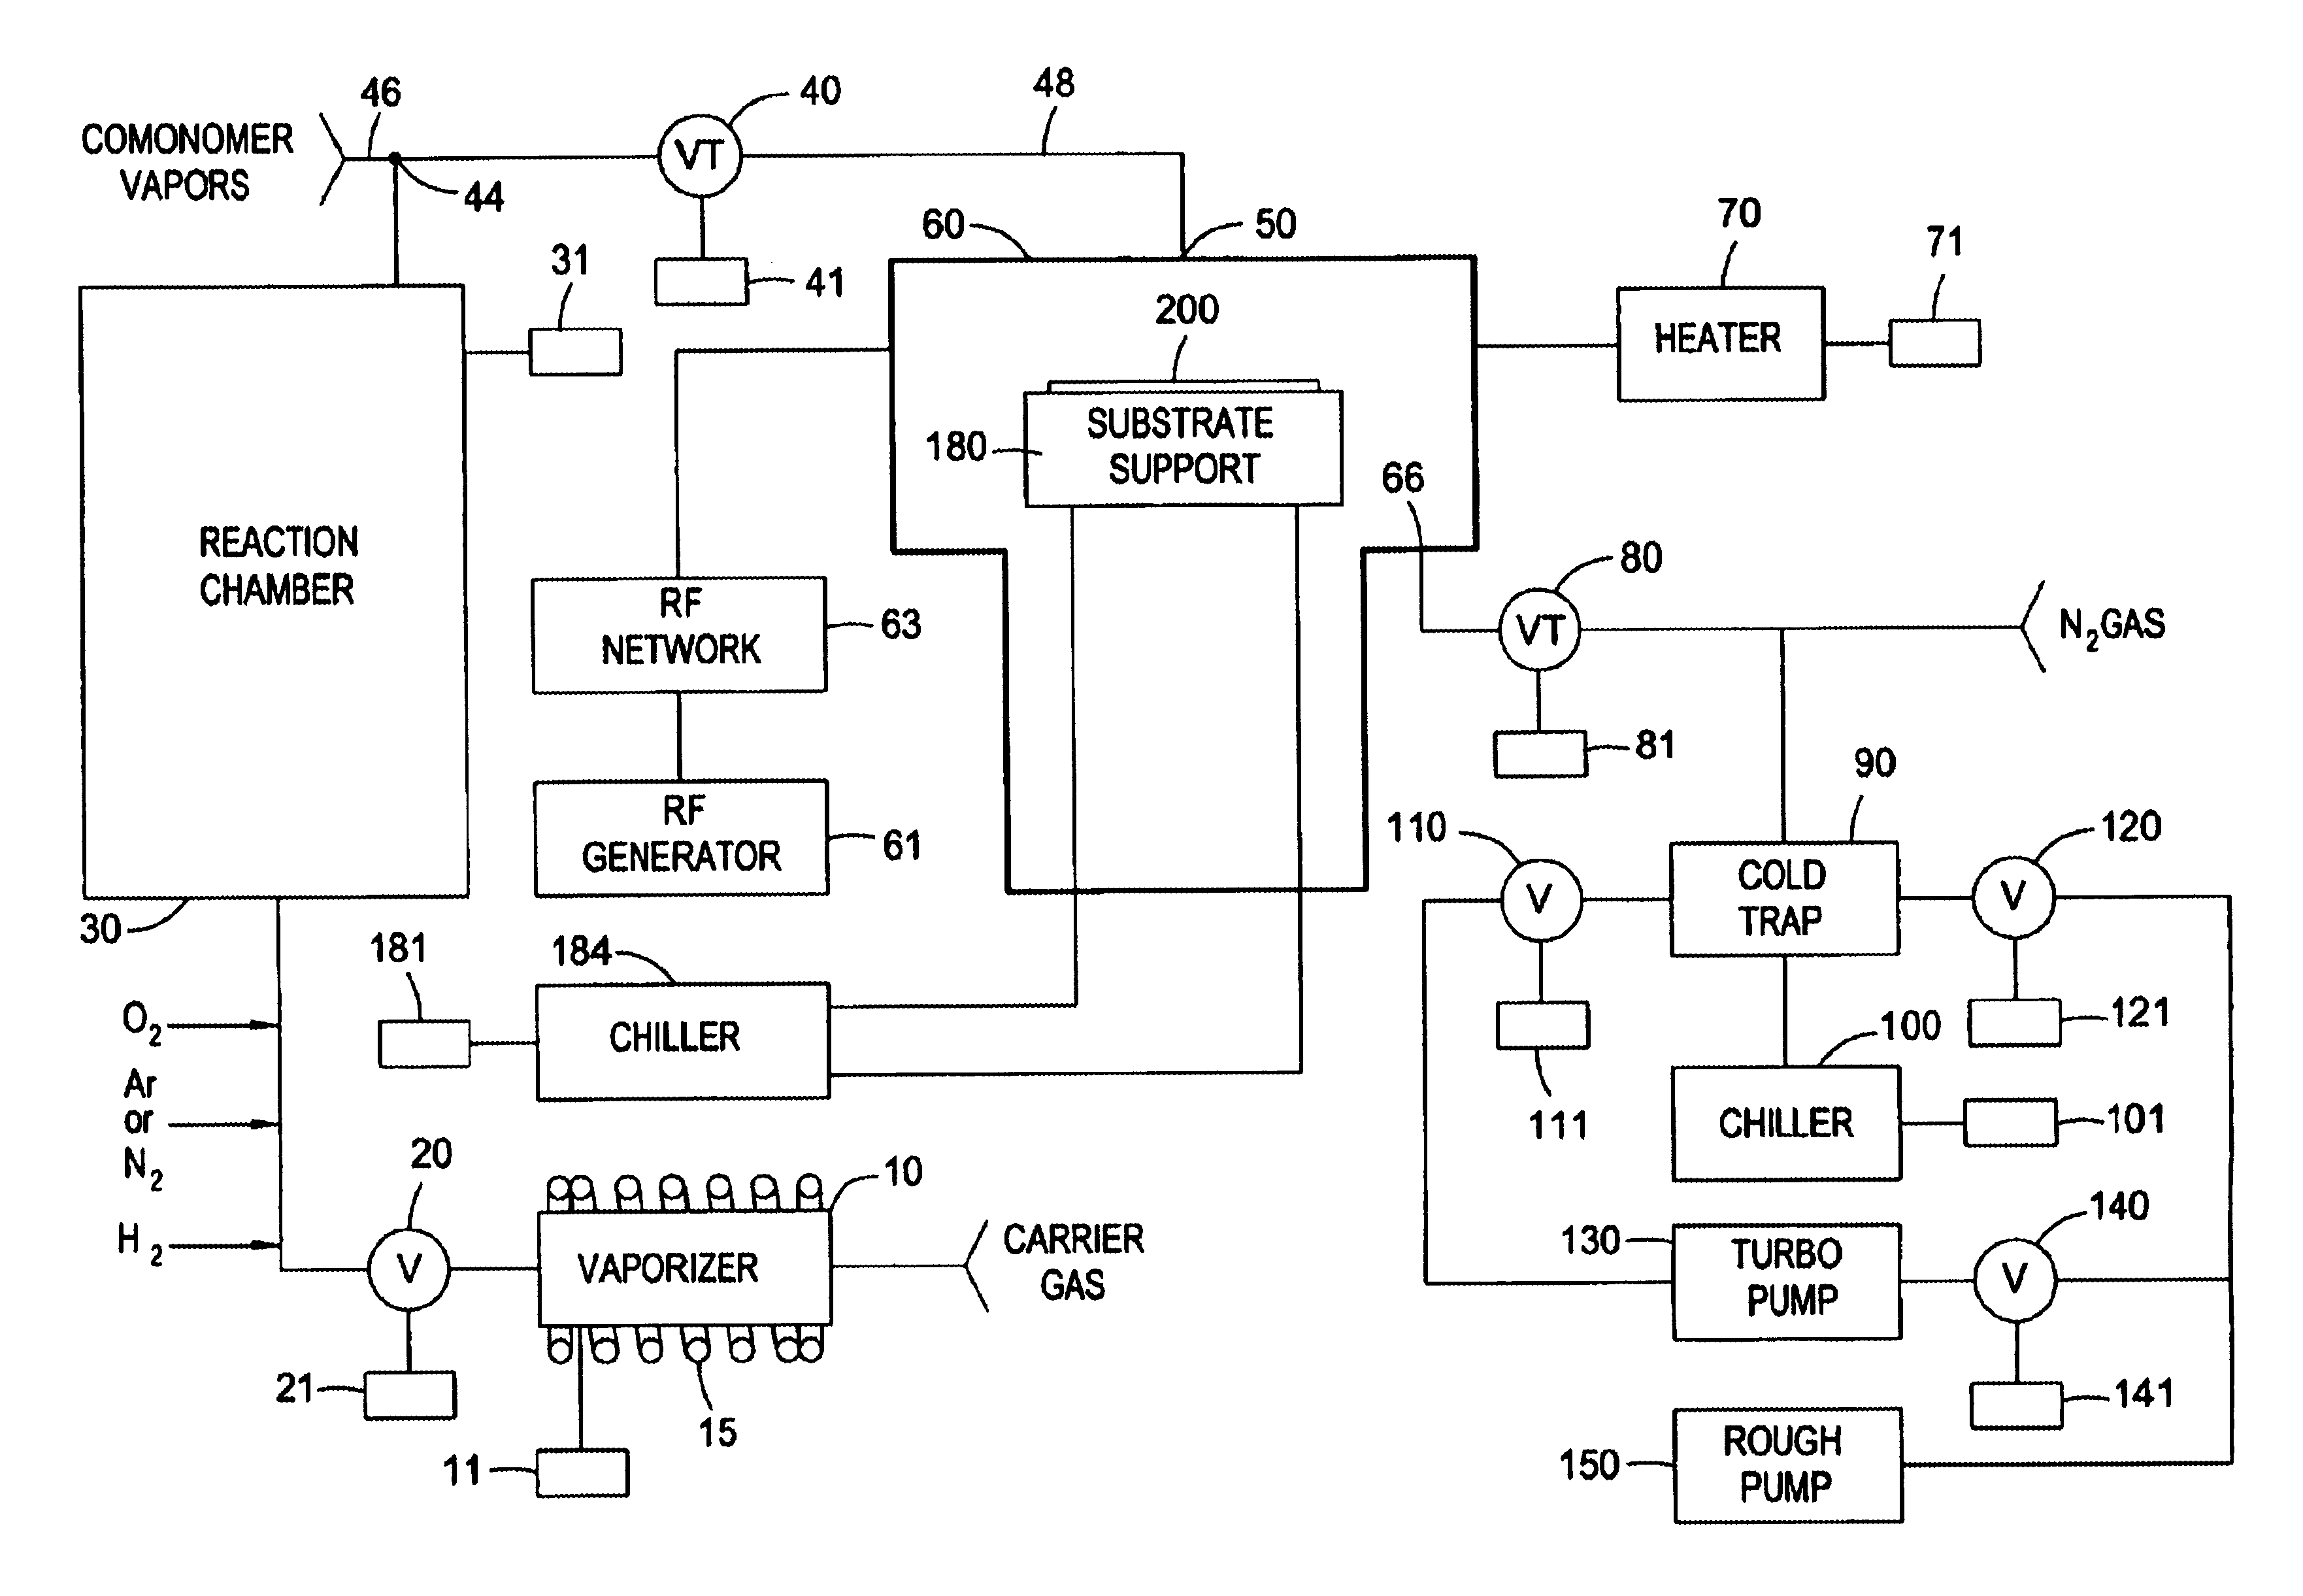 US06709715 20040323 D00000 patent us6709715 plasma enhanced chemical vapor deposition of watlow heater wiring diagram at bayanpartner.co